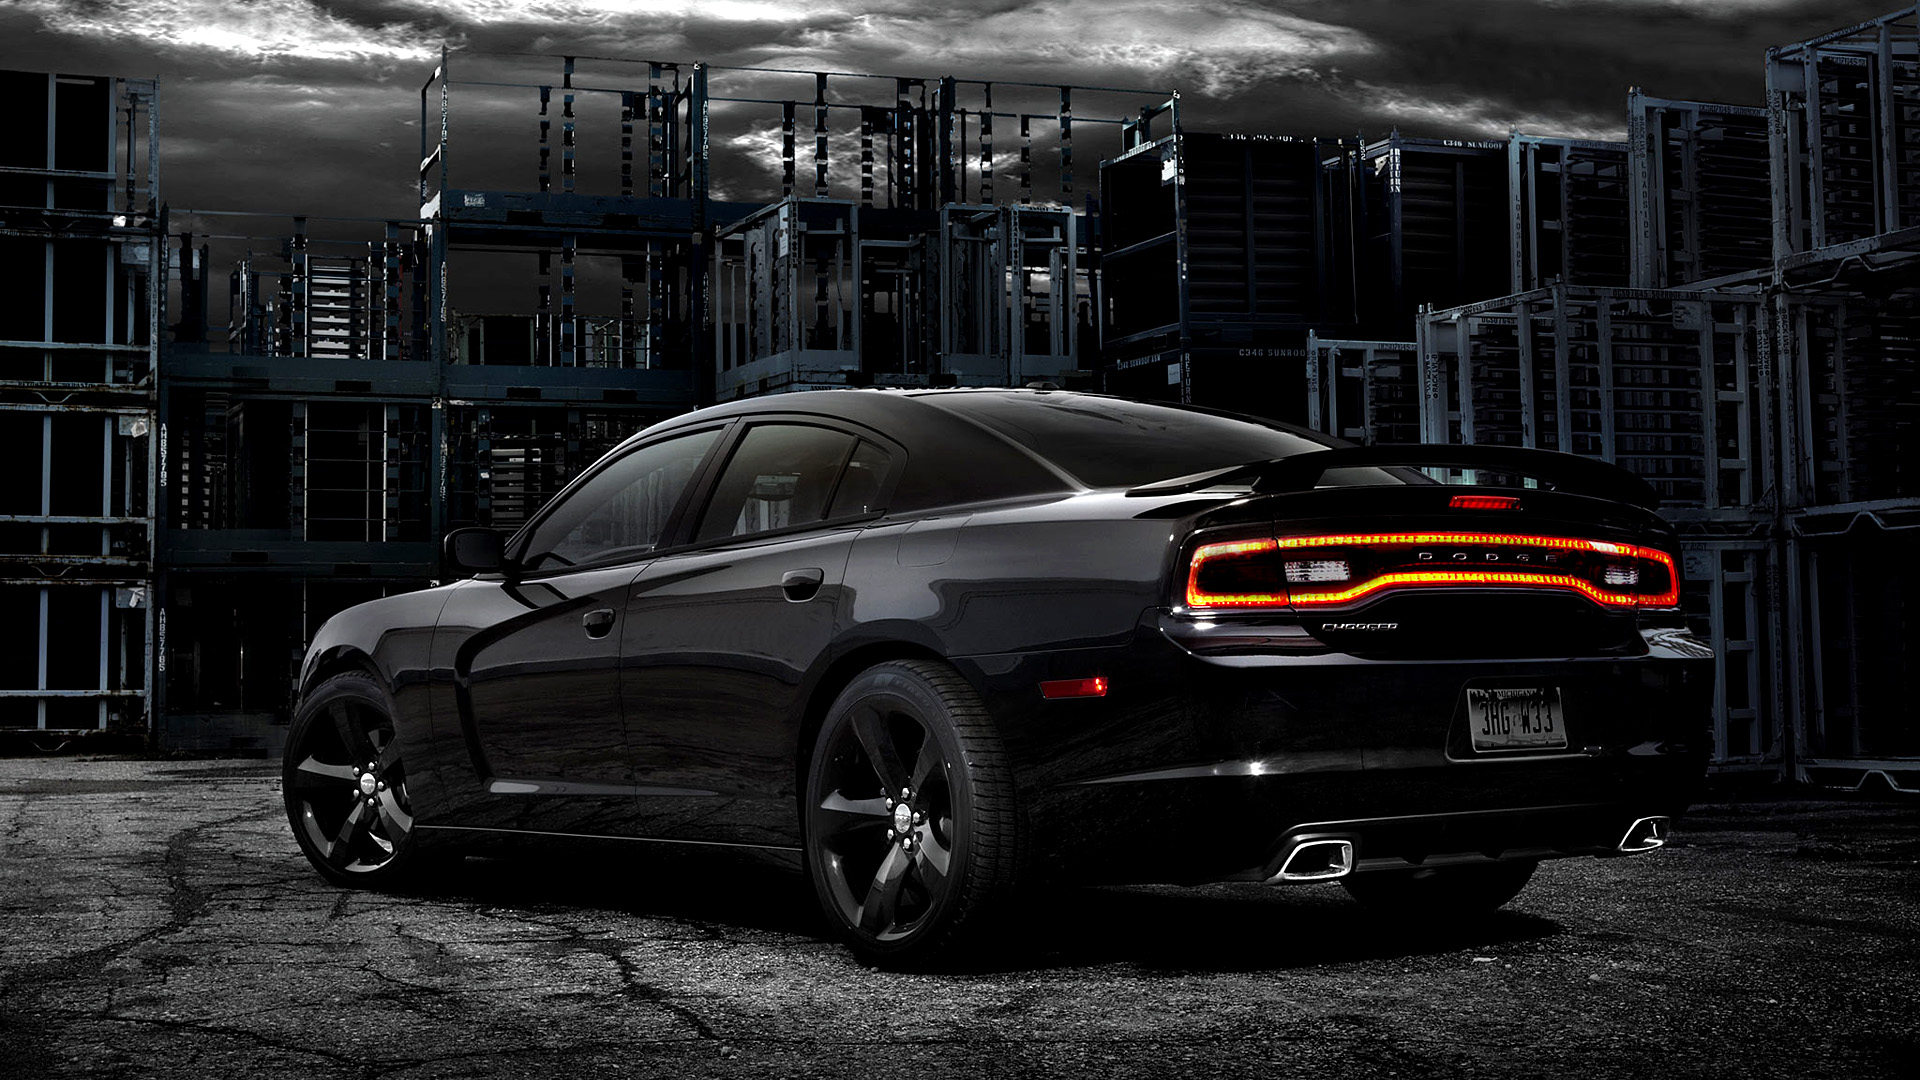 Black Dodge Charger Wallpaper Wallpapersafari